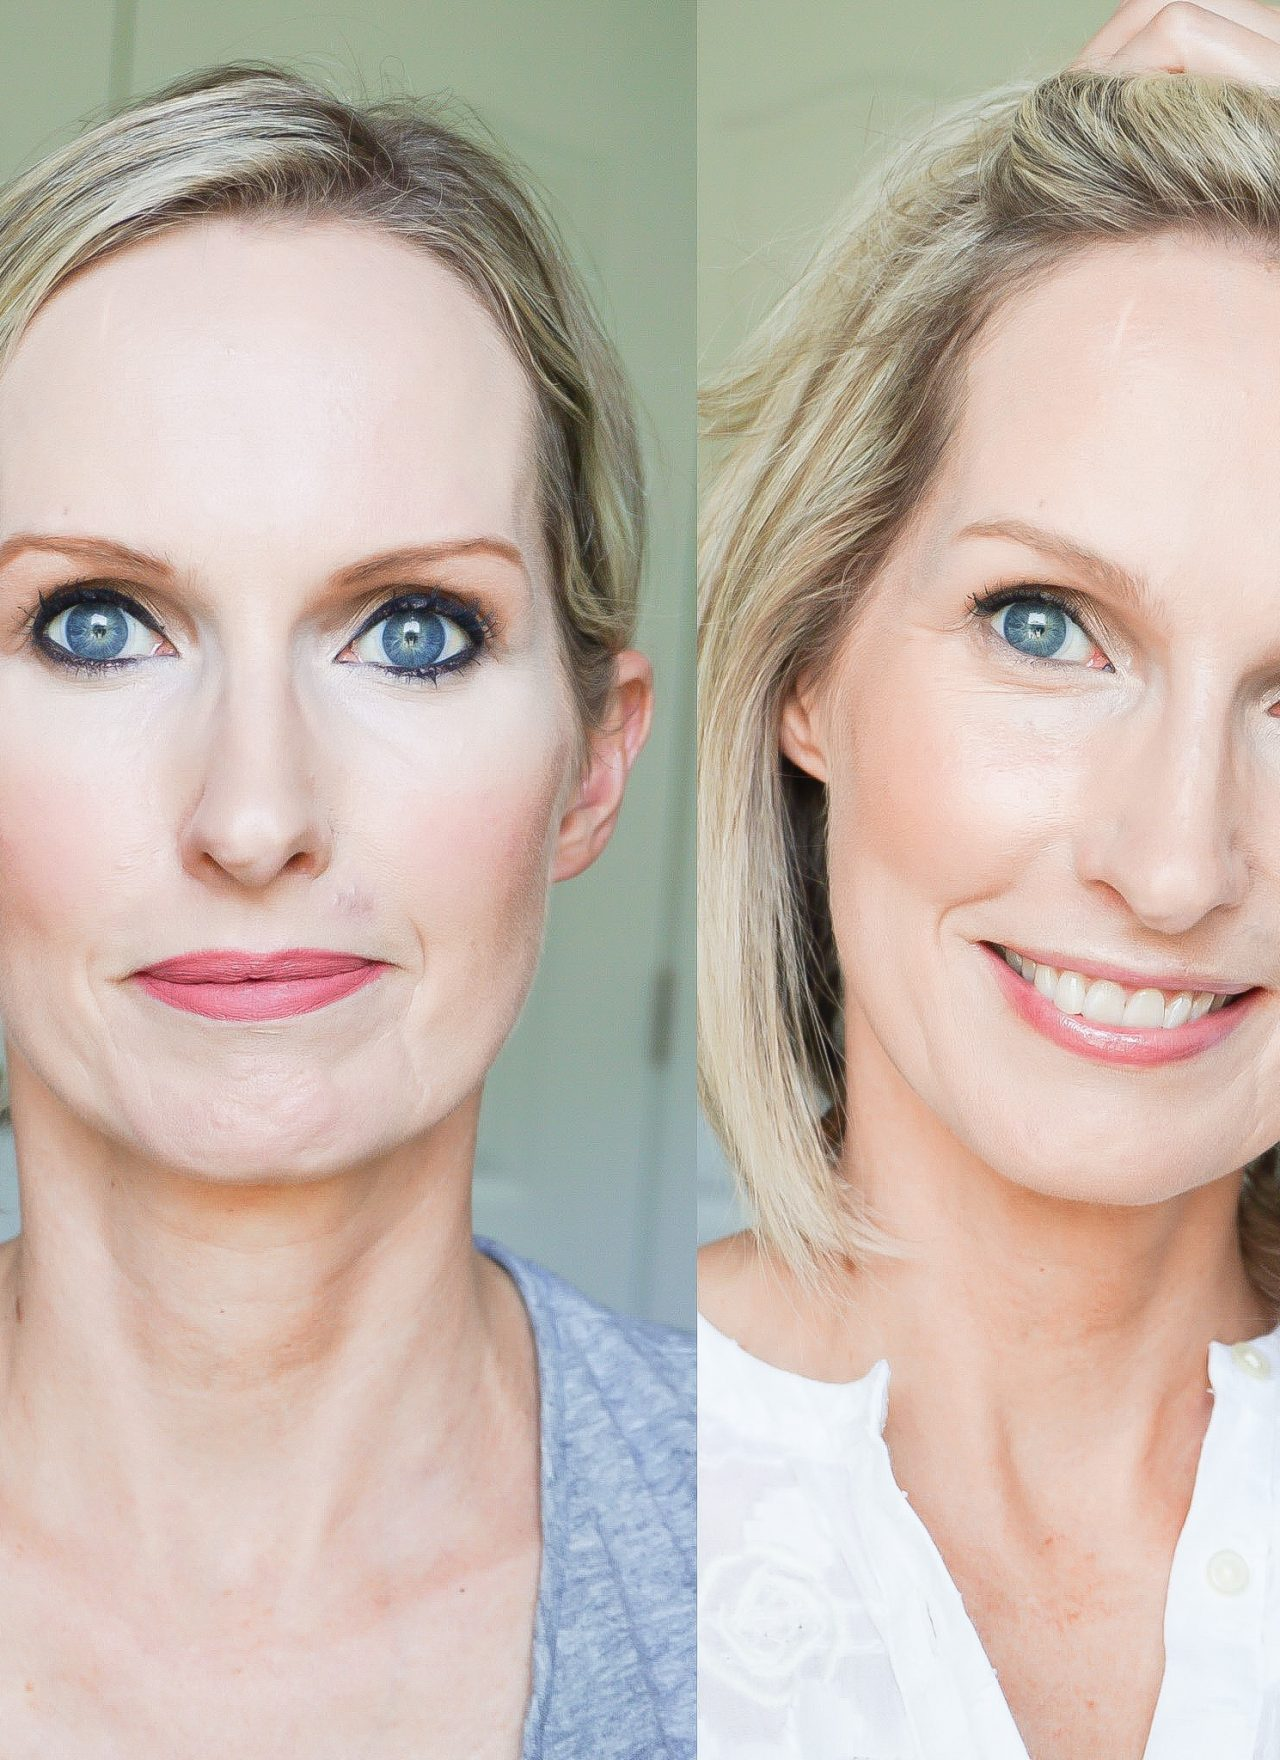 MAKEUP MISTAKES THAT MAKE YOU LOOK OLDER | I am sharing my best tips and product recommendations for avoiding the makeup mistakes that make you look older.